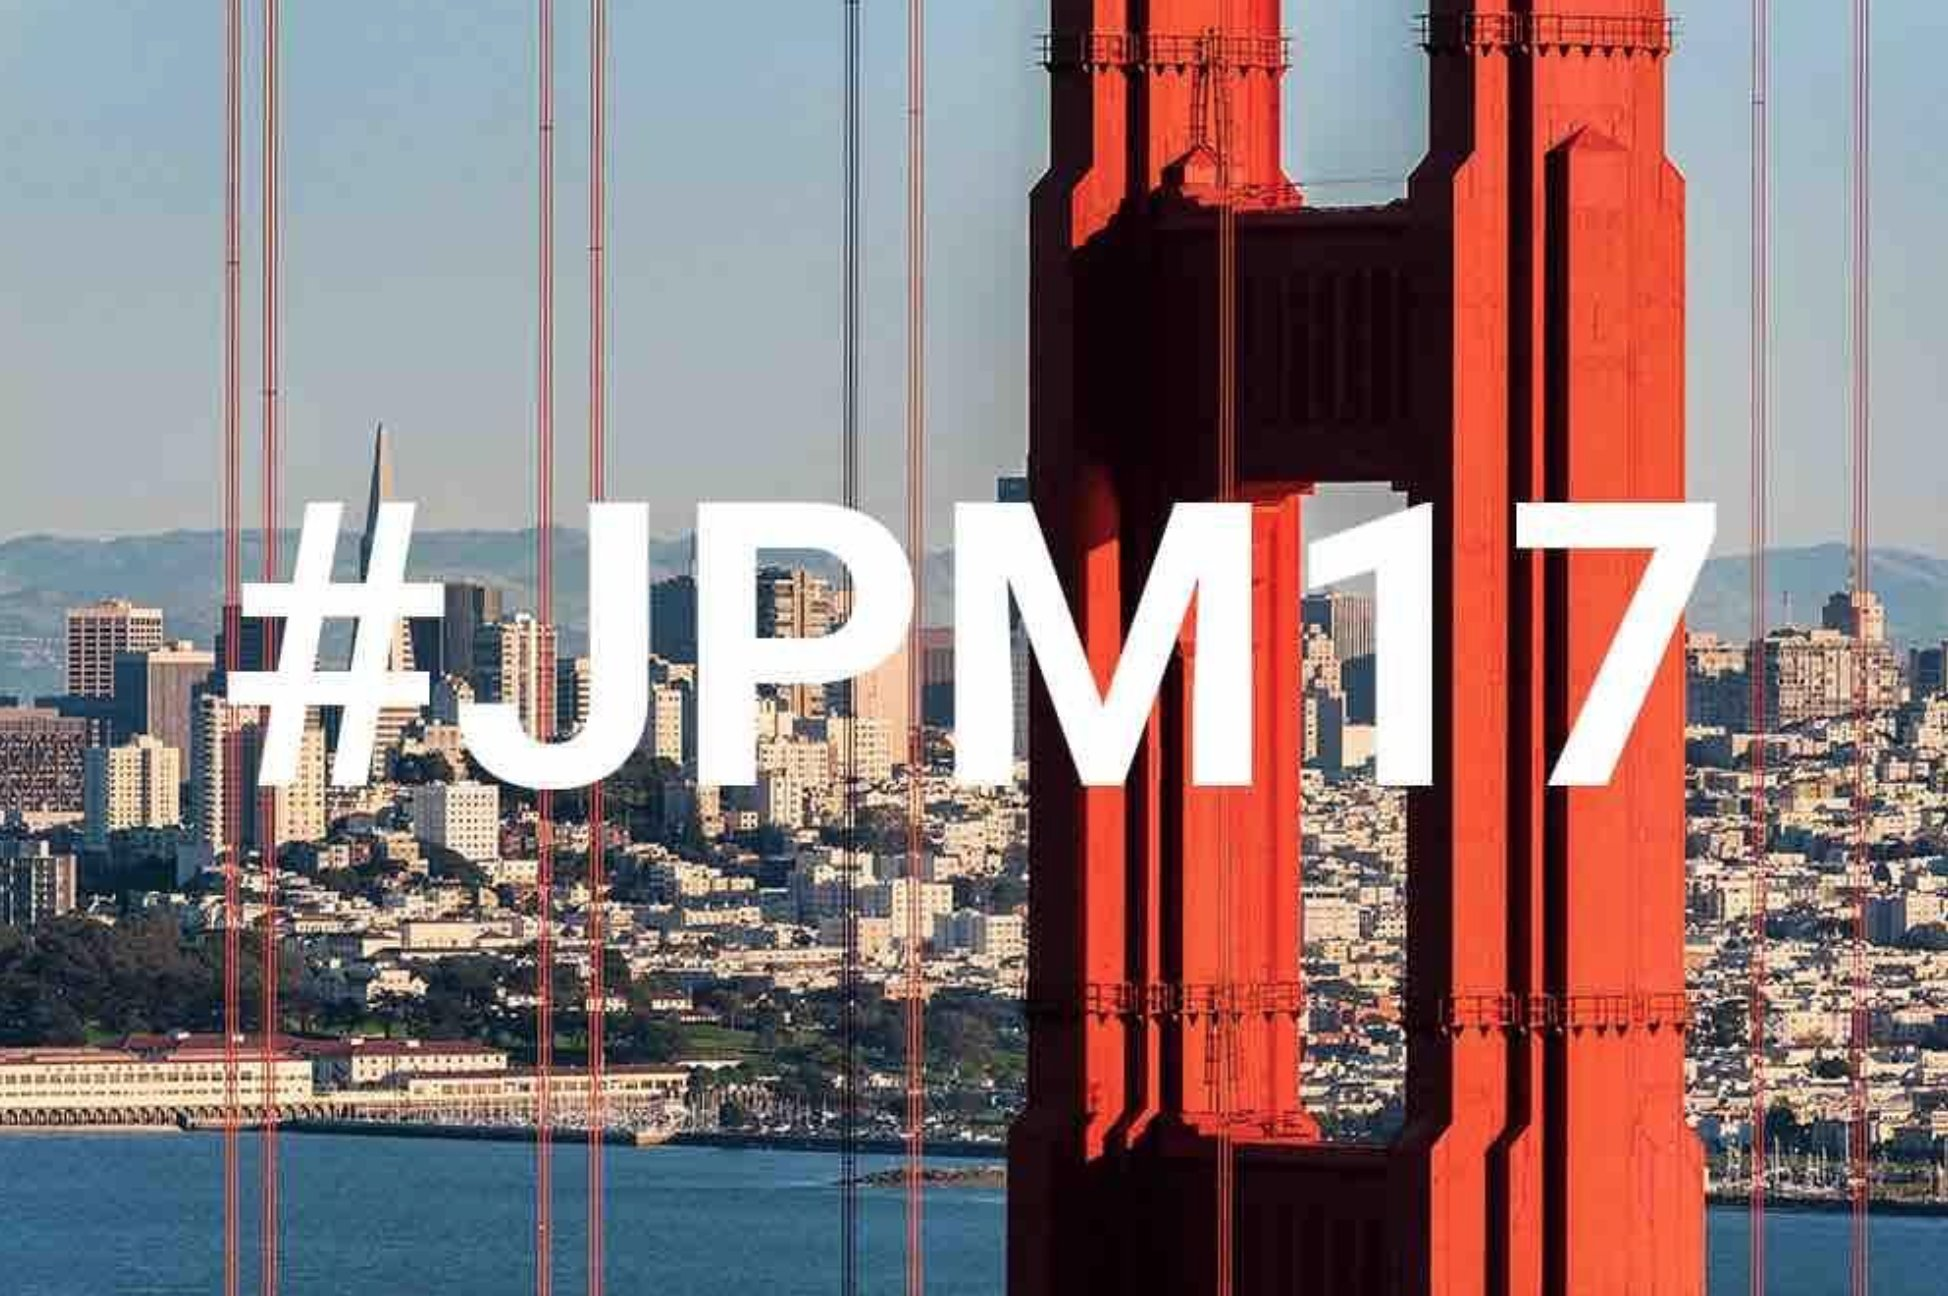 CV Lab in San Francisco for #JPM2017